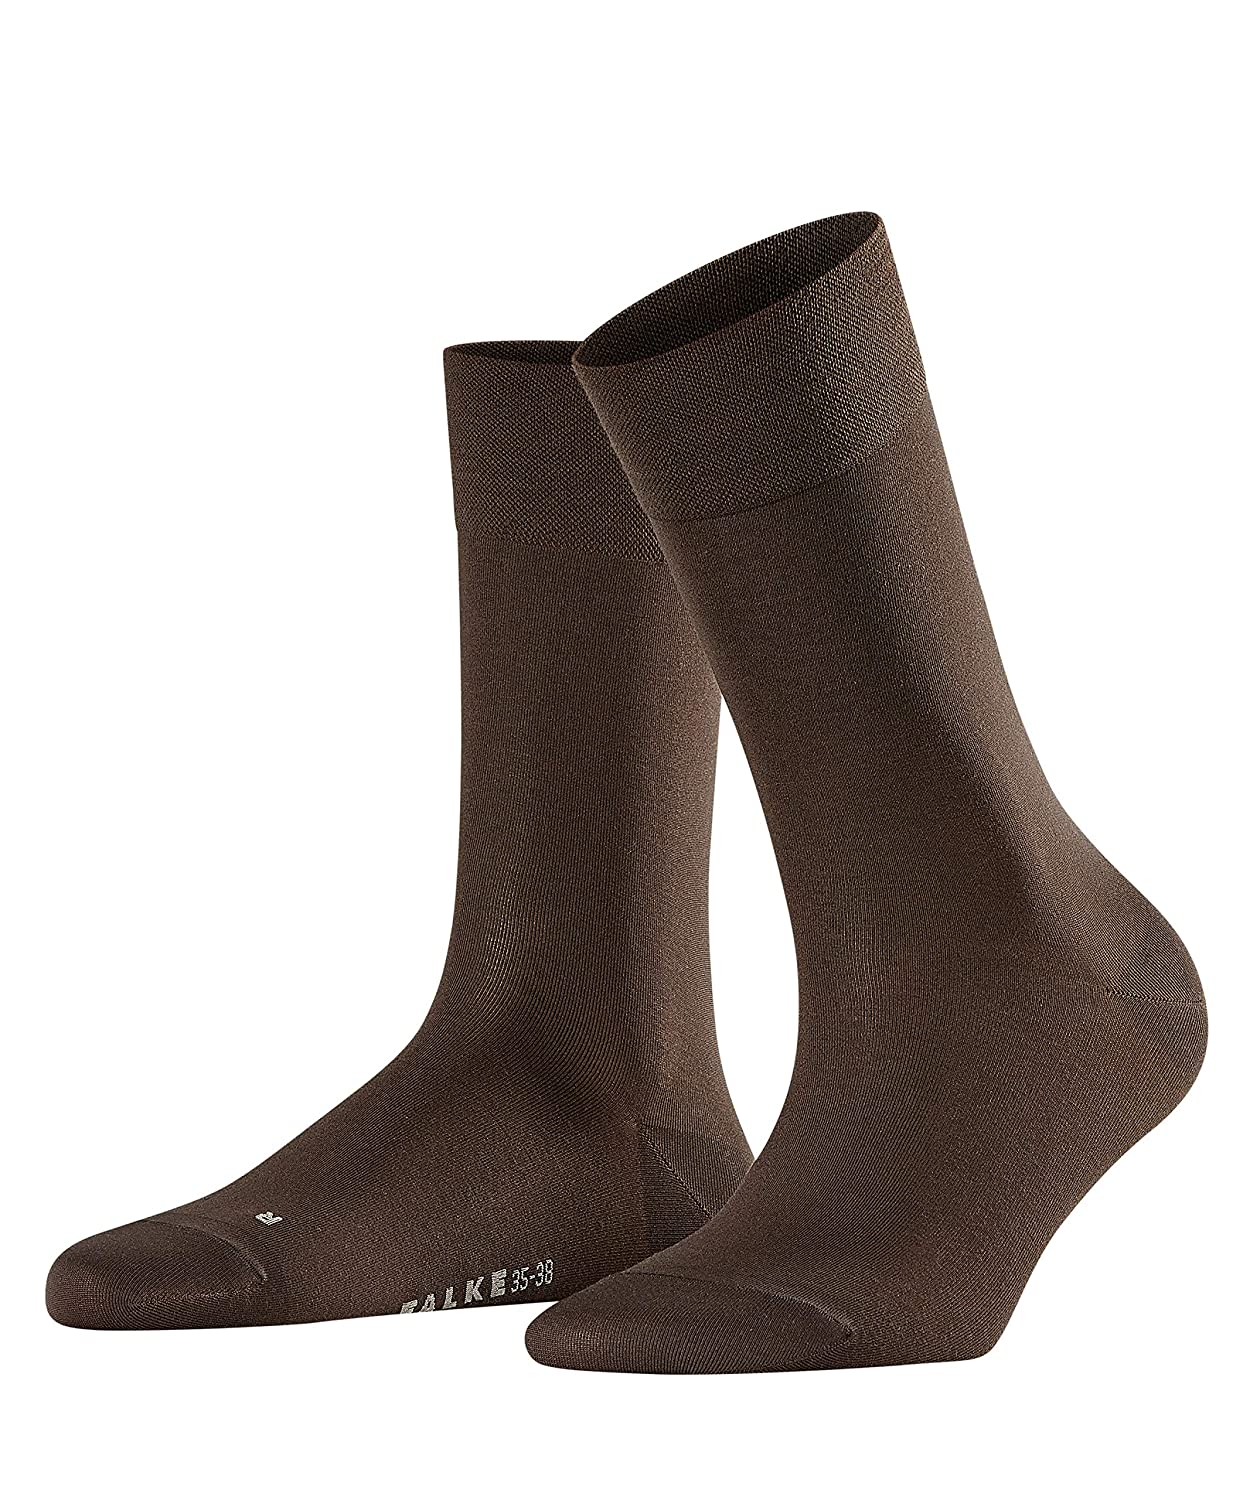 FALKE Women's Sensitive Granada Sock